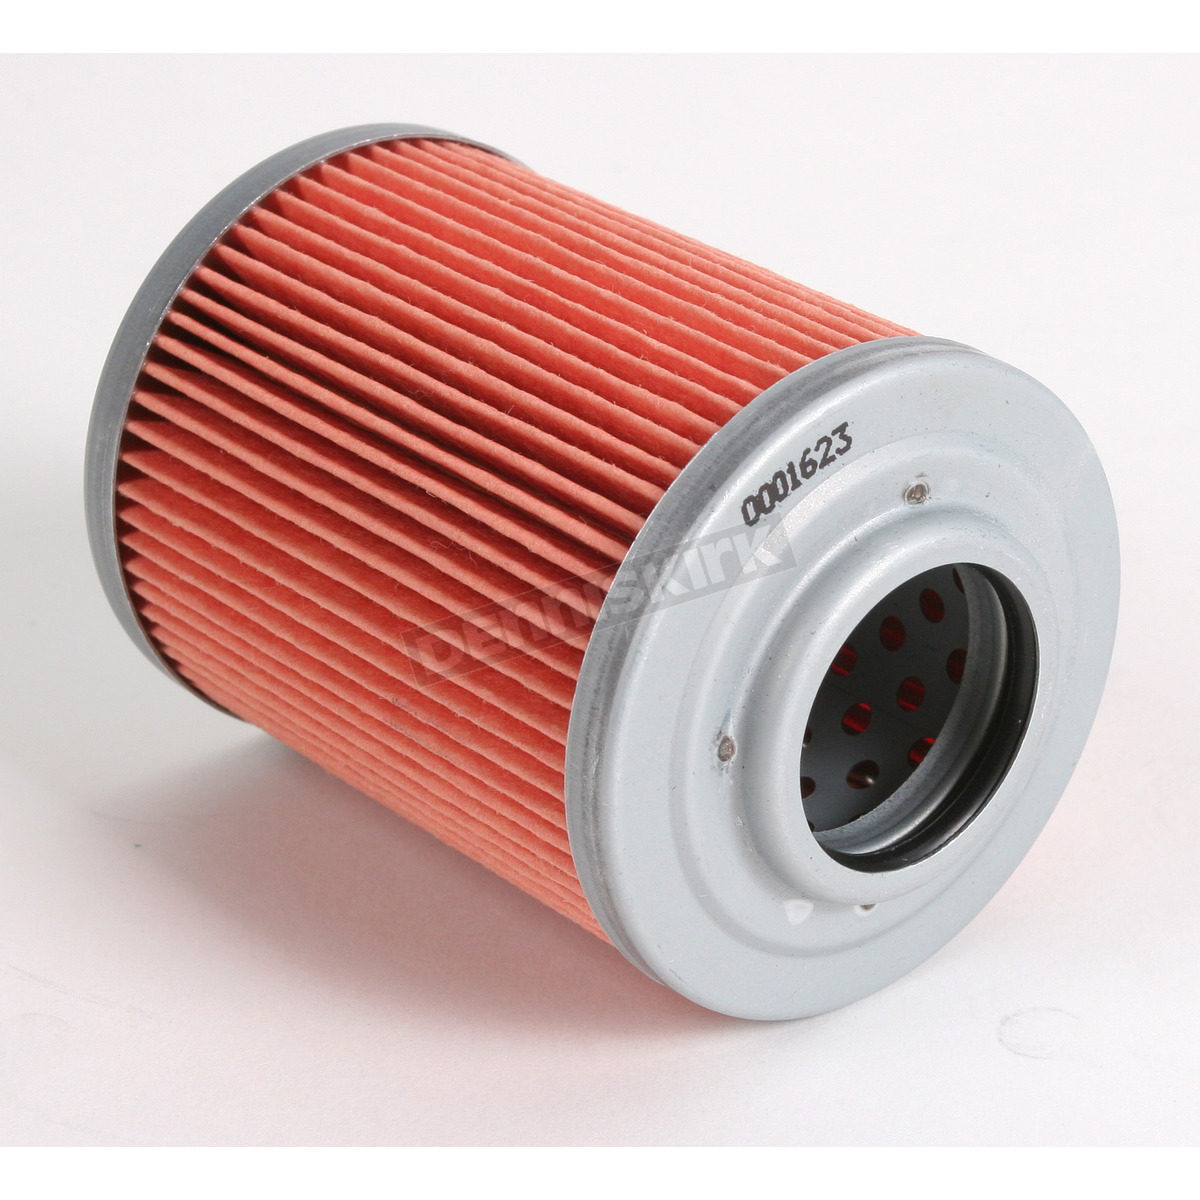 K/&N Oil Filter for 2014-2017 Can-Am Maverick Max X rs DPS 1000R